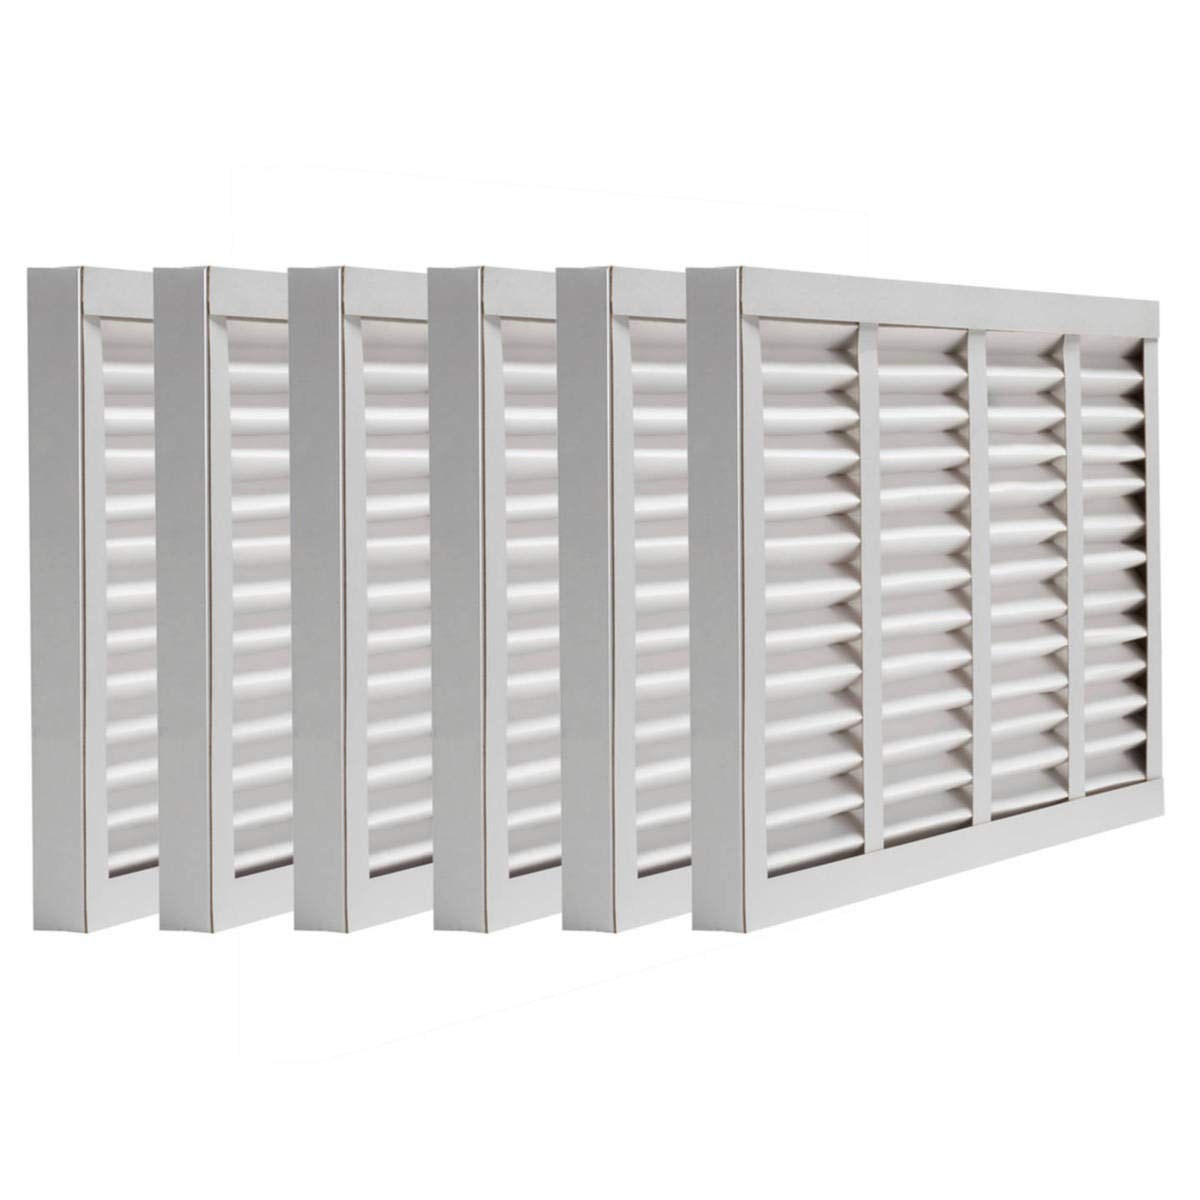 """Assigned by Sterling Seal & Supply, (STCC) HI-18x22x1x6.AZ.Toe Furnace Air Filter, 18"""" x 22"""" x 1"""", Purolator Hi-E 40 Extended Surface Pleated Air Filter, Mechanical MERV 8 (Pack of 6)"""